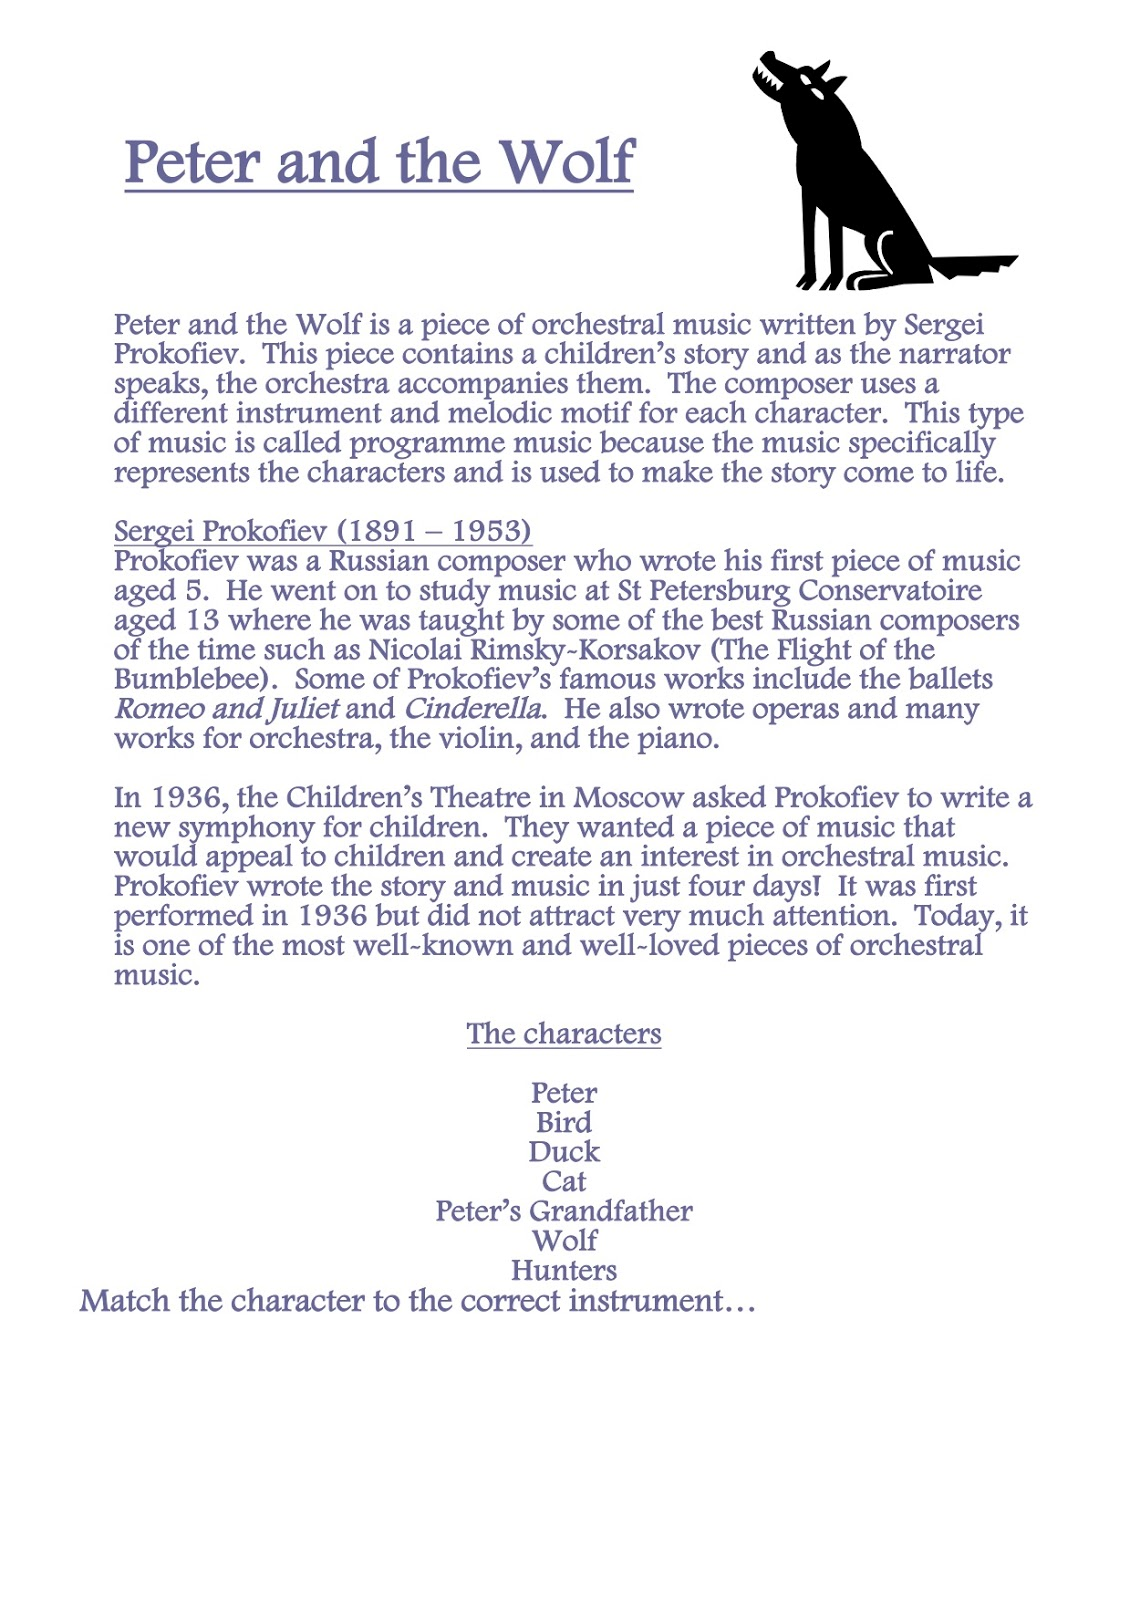 worksheet Peter And The Wolf Worksheet harris invictus music blog instruments of the orchestra resources watch this clip and answer questions on your worksheets